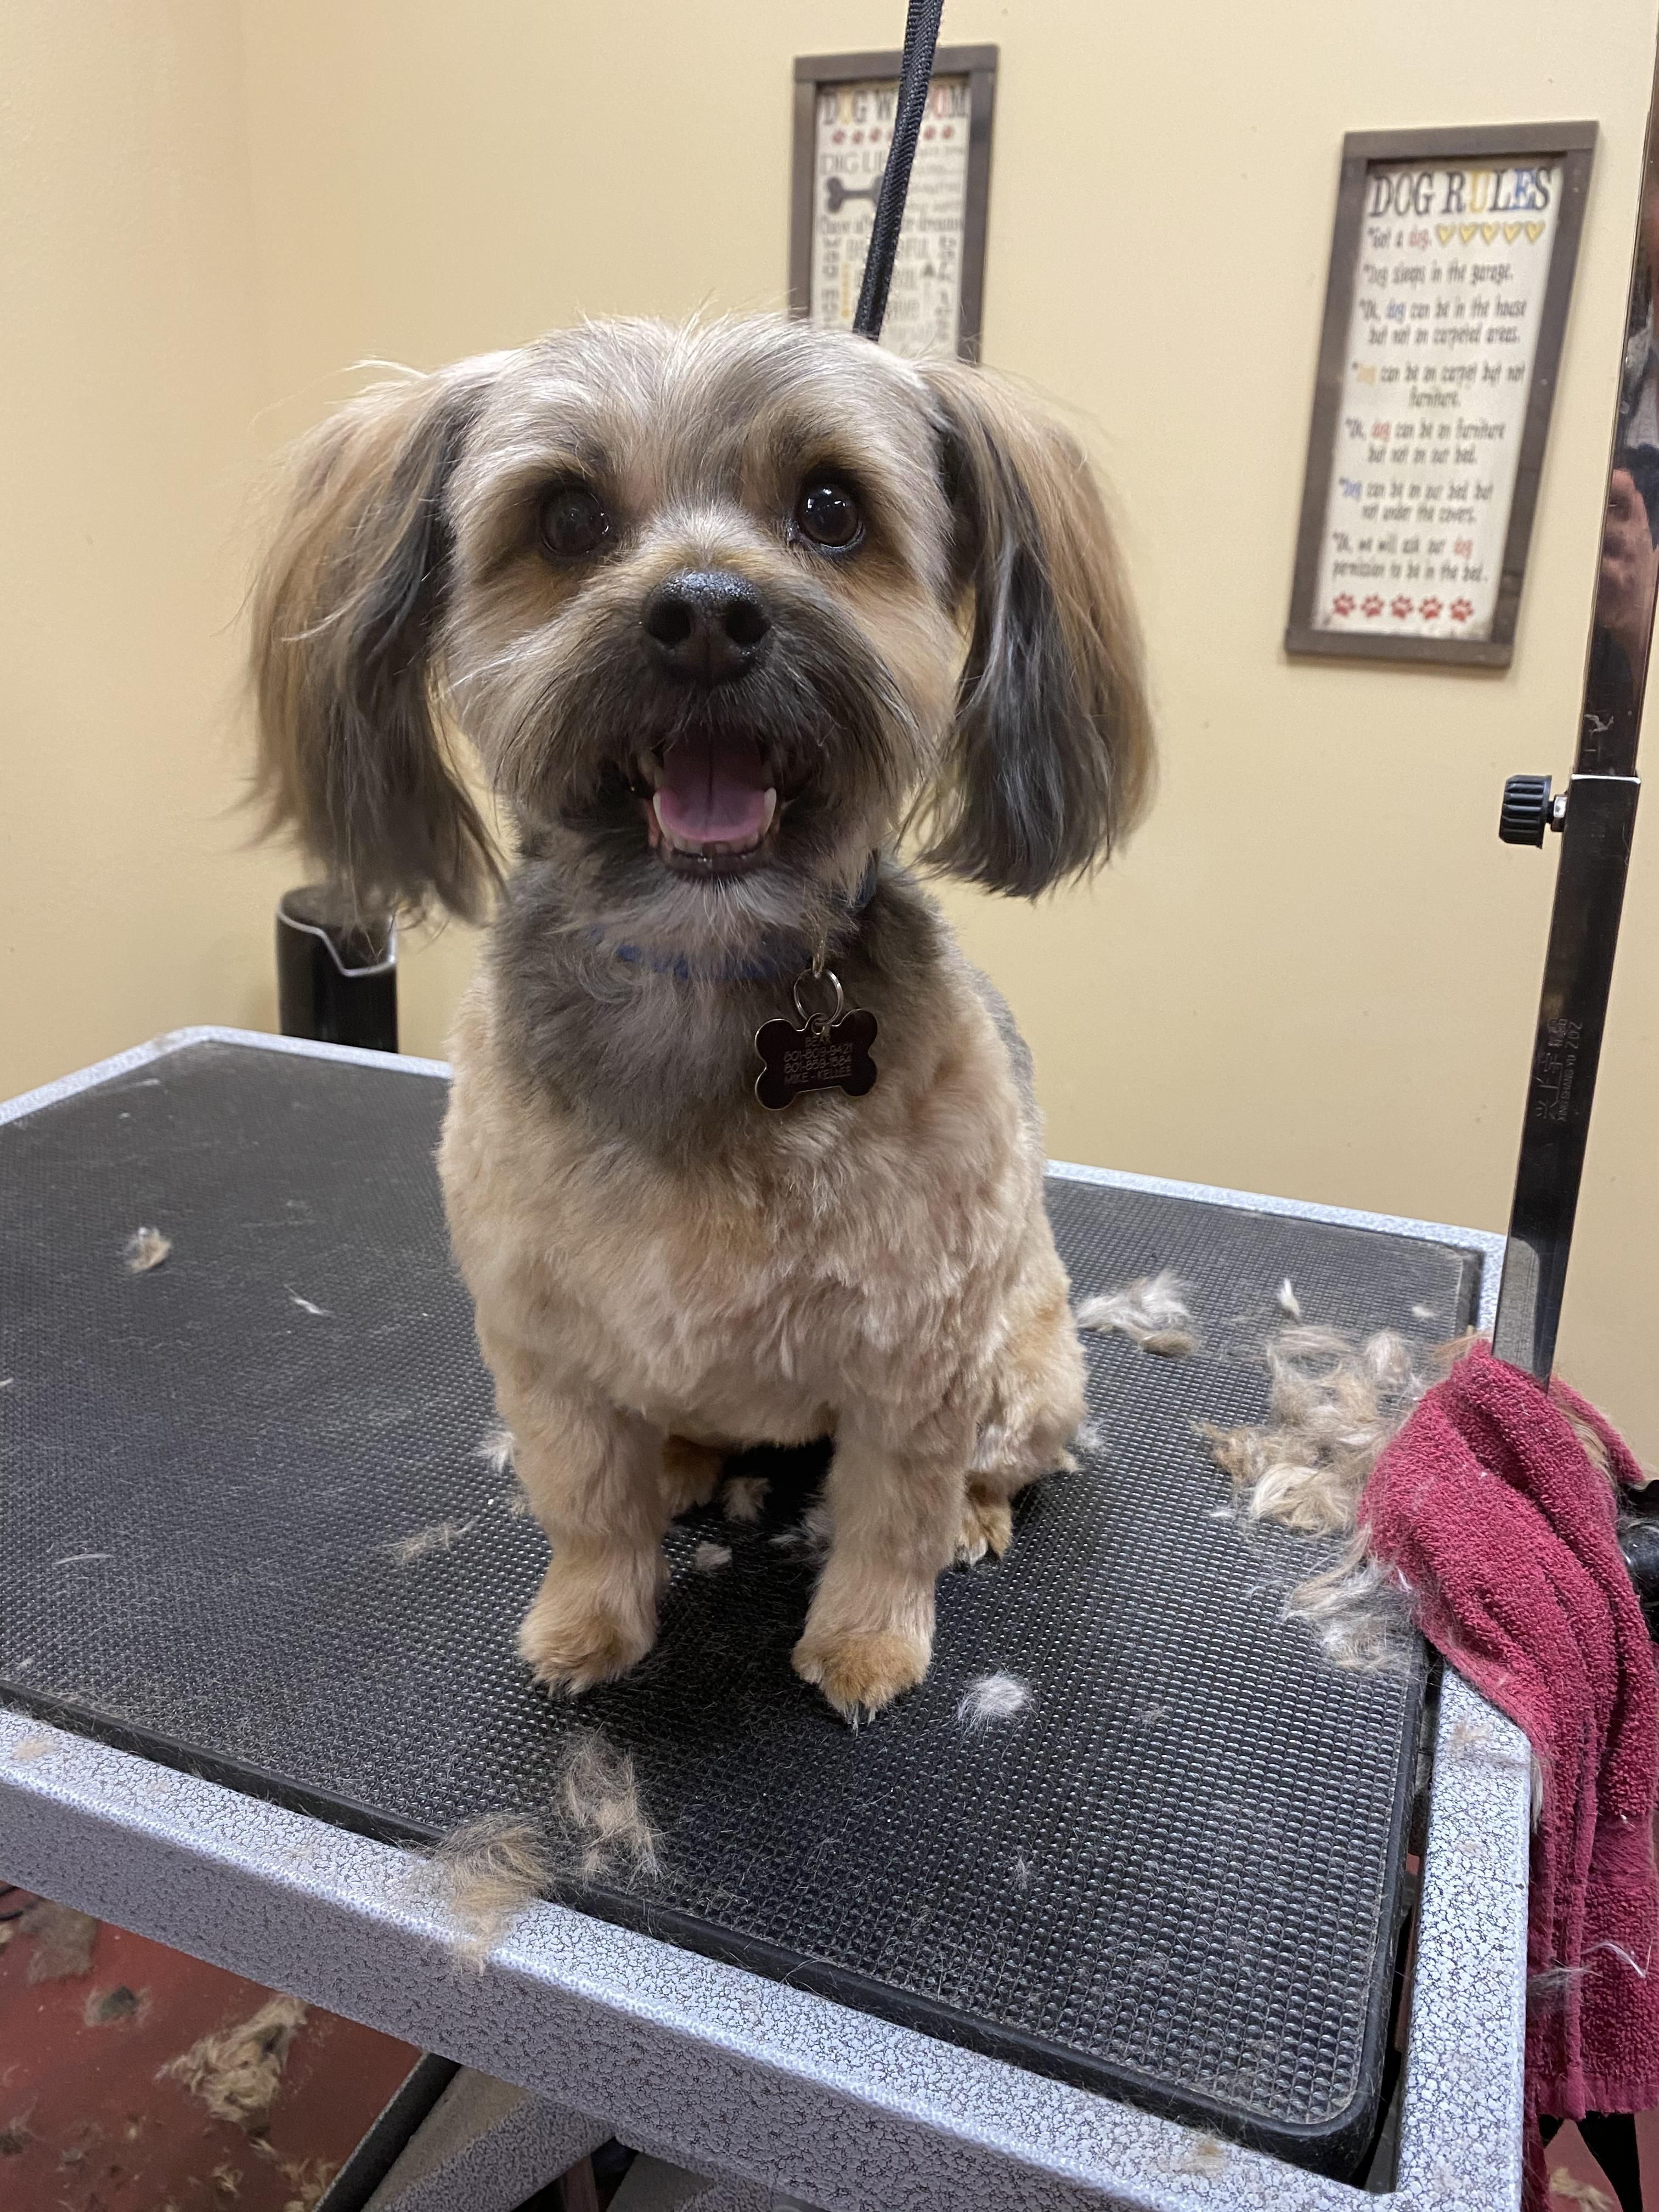 Bear The Shorkie Groomed By Shelby In 2020 Healthy Pets Pet Grooming Grooming